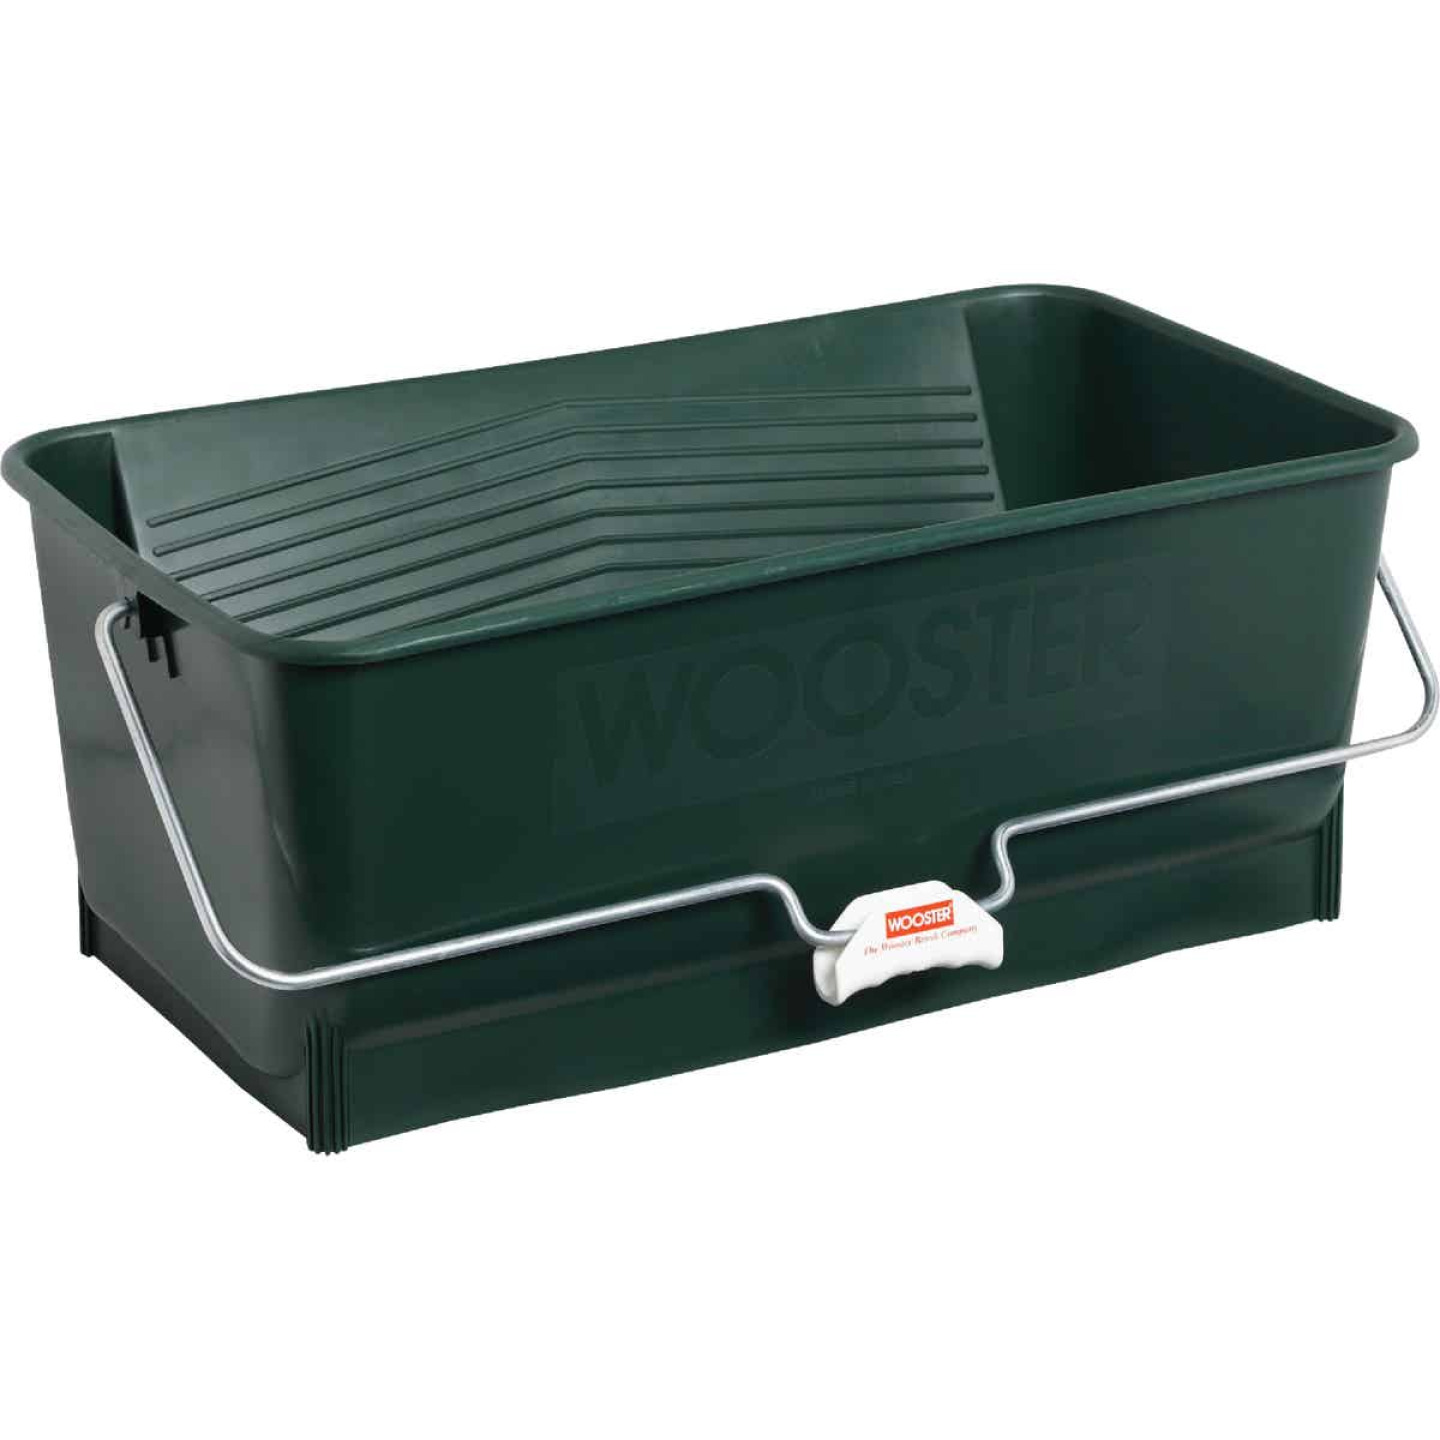 Wooster Wide Boy 5 Gal. Green Painter's Bucket Image 1